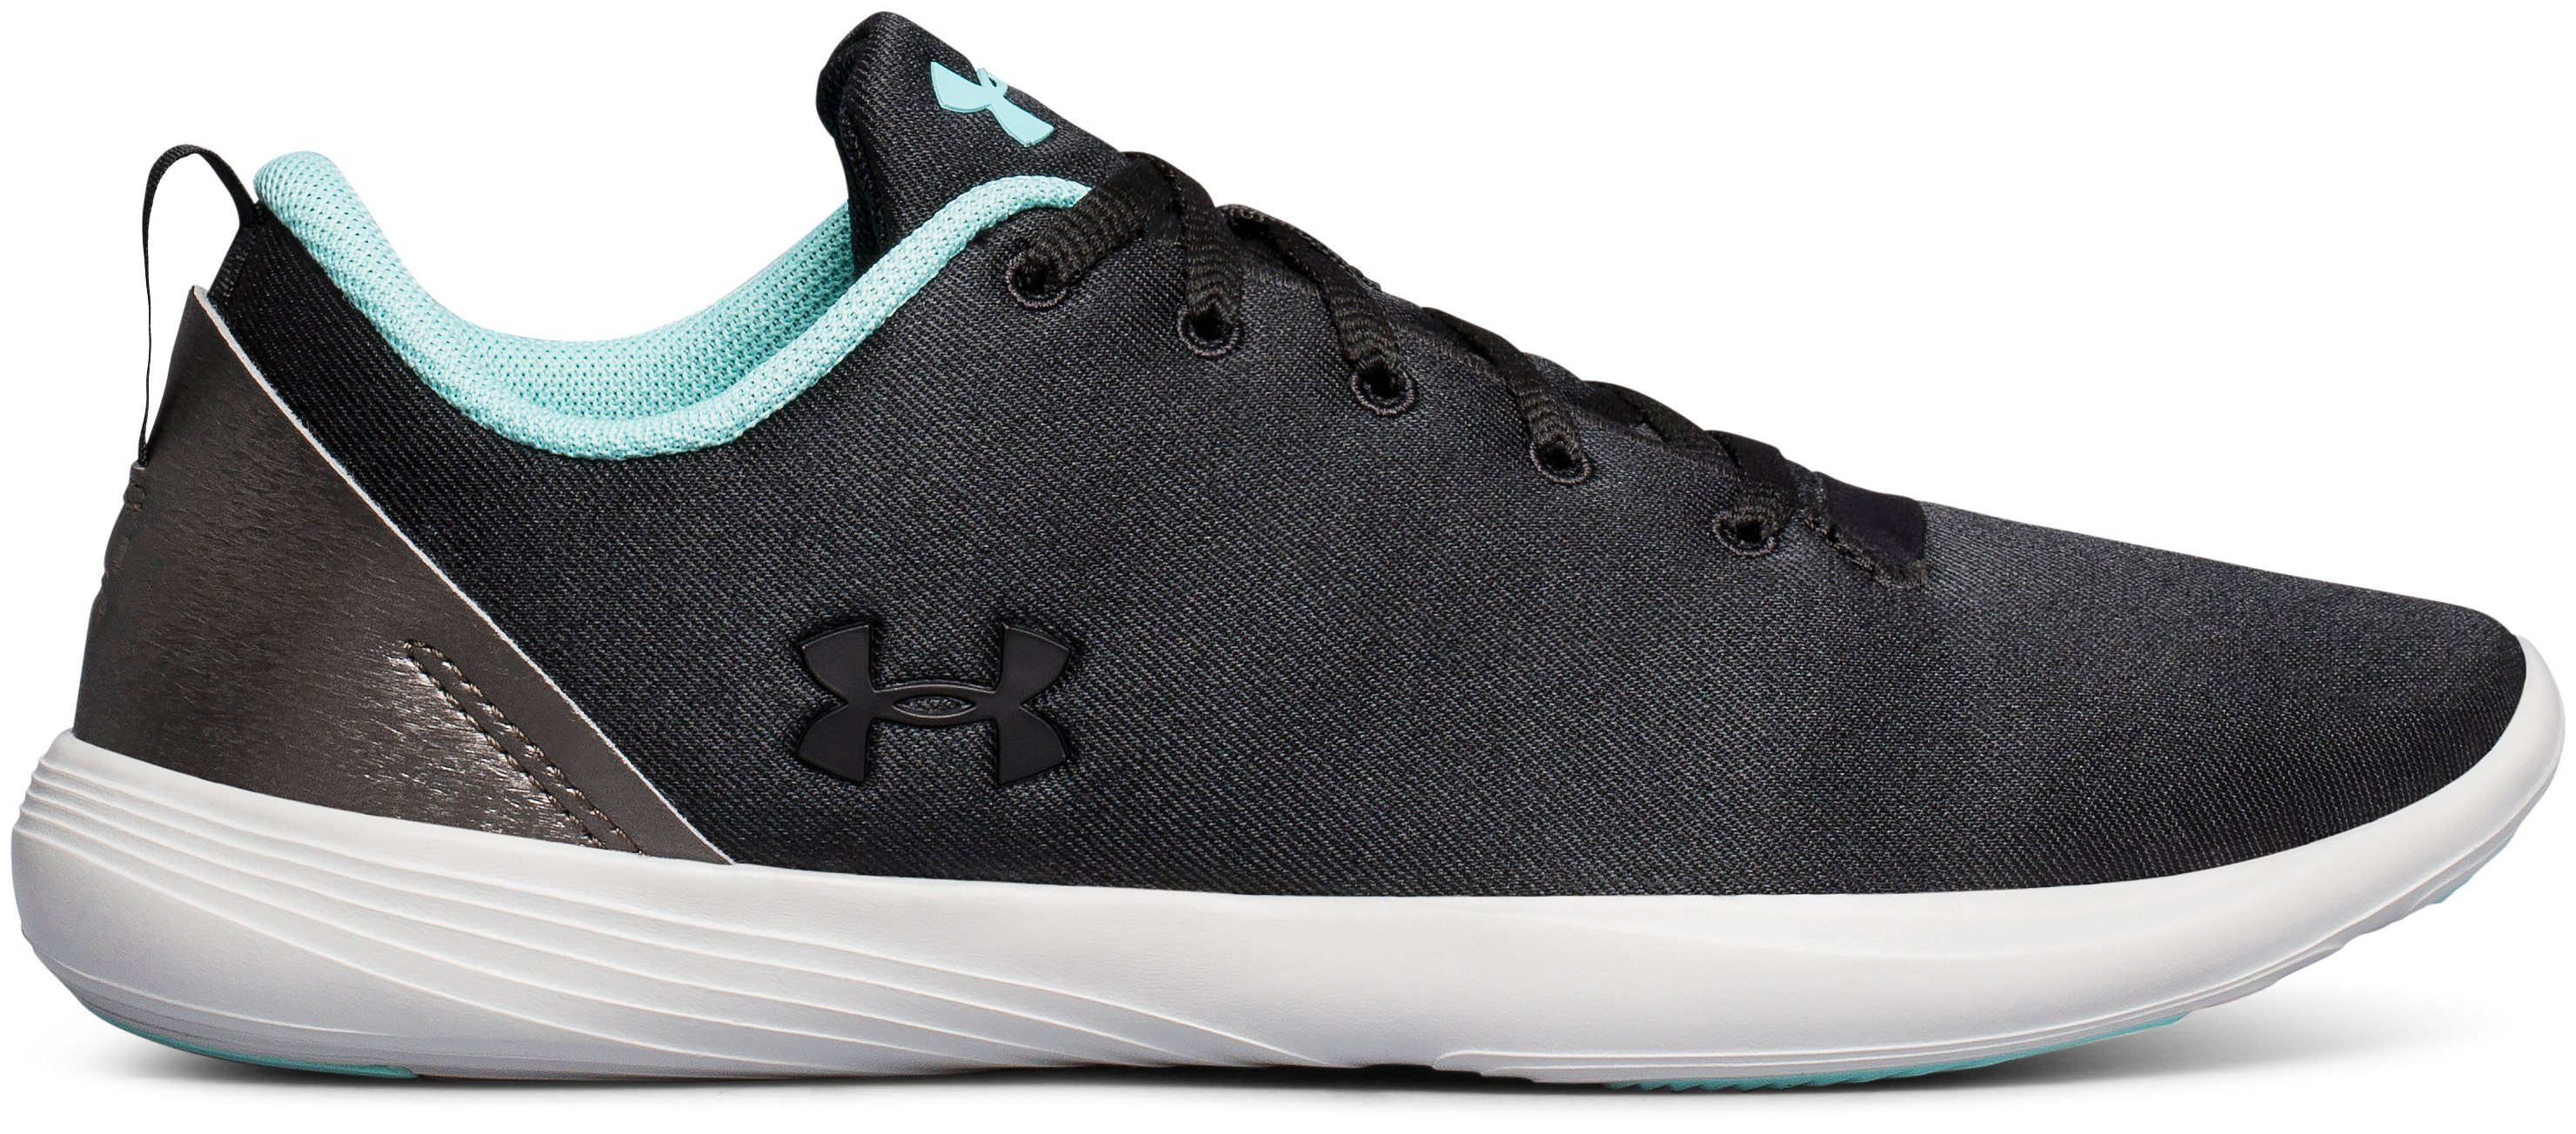 Women's UA Street Precision Low Canvas Training Shoes, Black